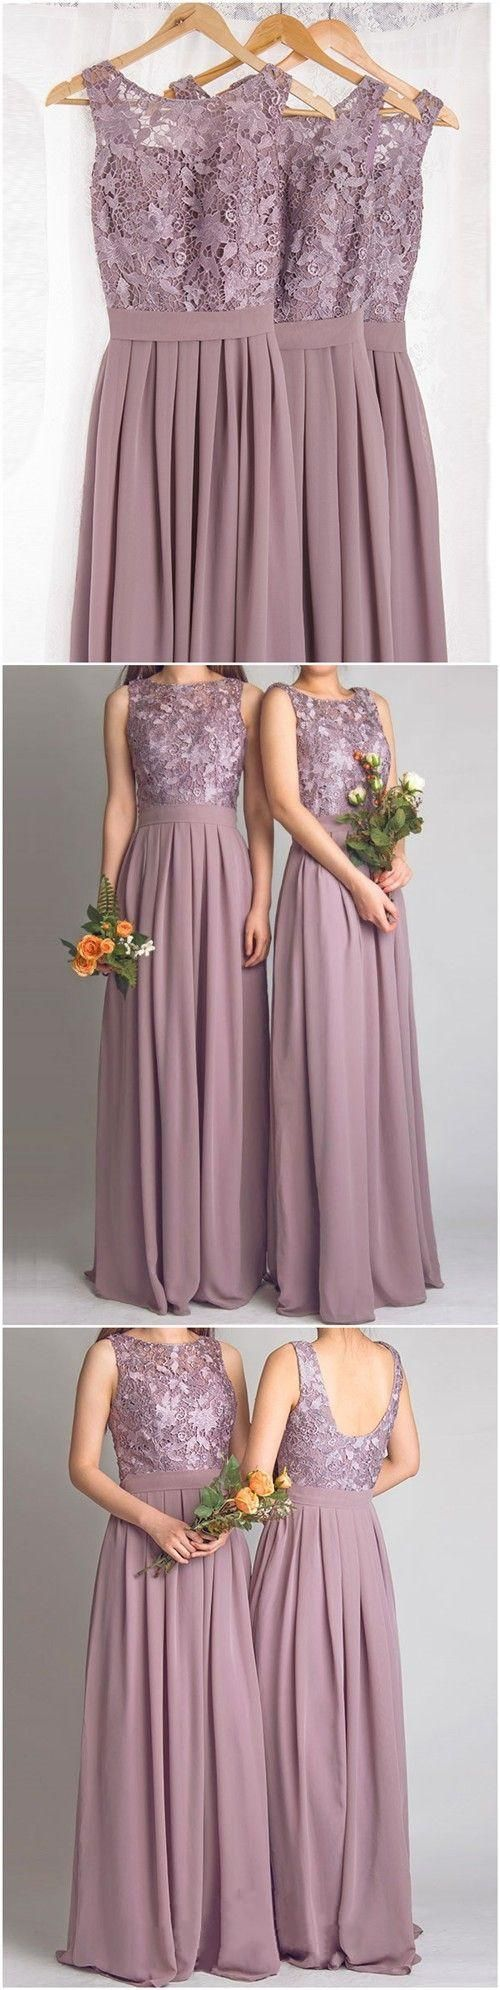 Dusty Mauve Bridesmaid Dresses For Wedding With Applique Pleat Jewel Sleeveless Open Backless Bridesmaid Gowns Long Formal Gowns Prom Gown